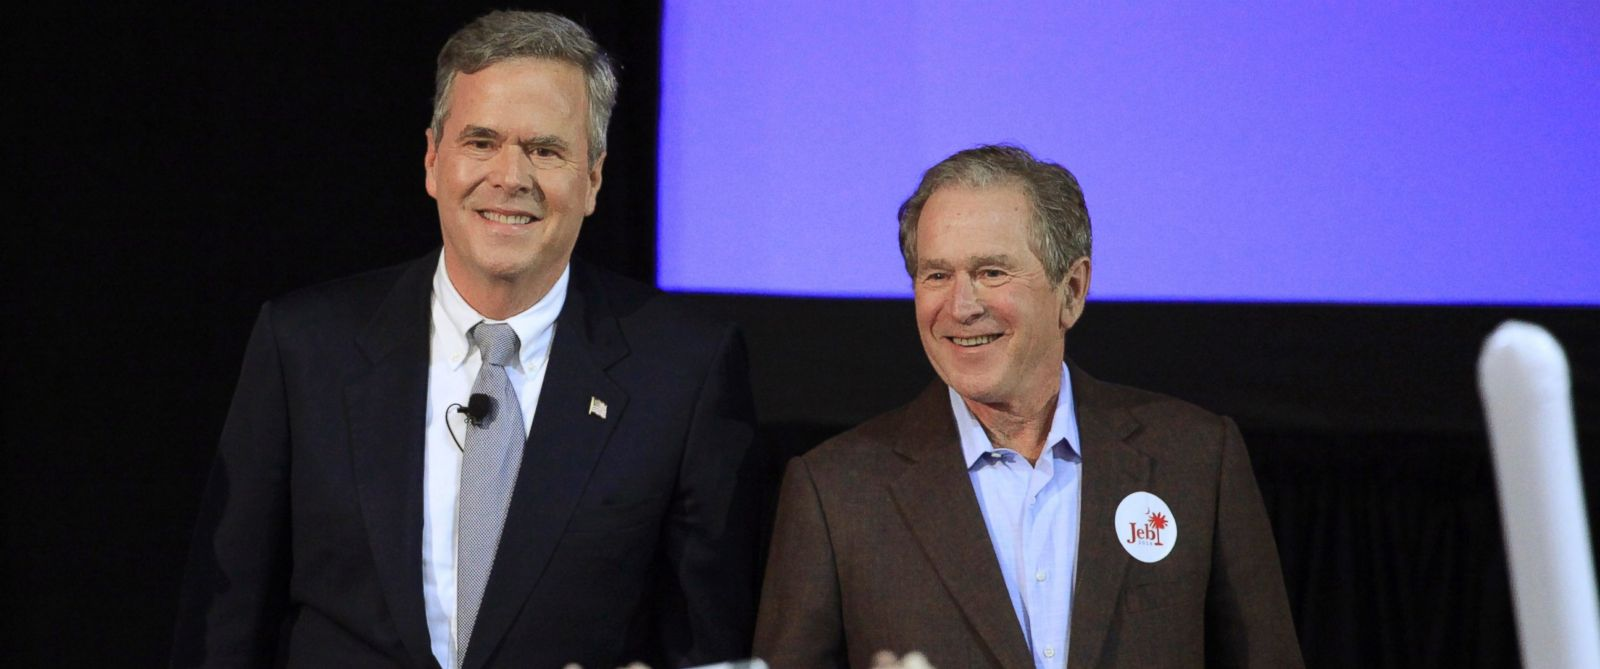 PHOTO: Jeb Bush is joined by his brother former President George W. Bush on the campaign trail for the first time in the 2016 campaign at a rally in North Charleston, South Carolina, Feb. 15, 2016.